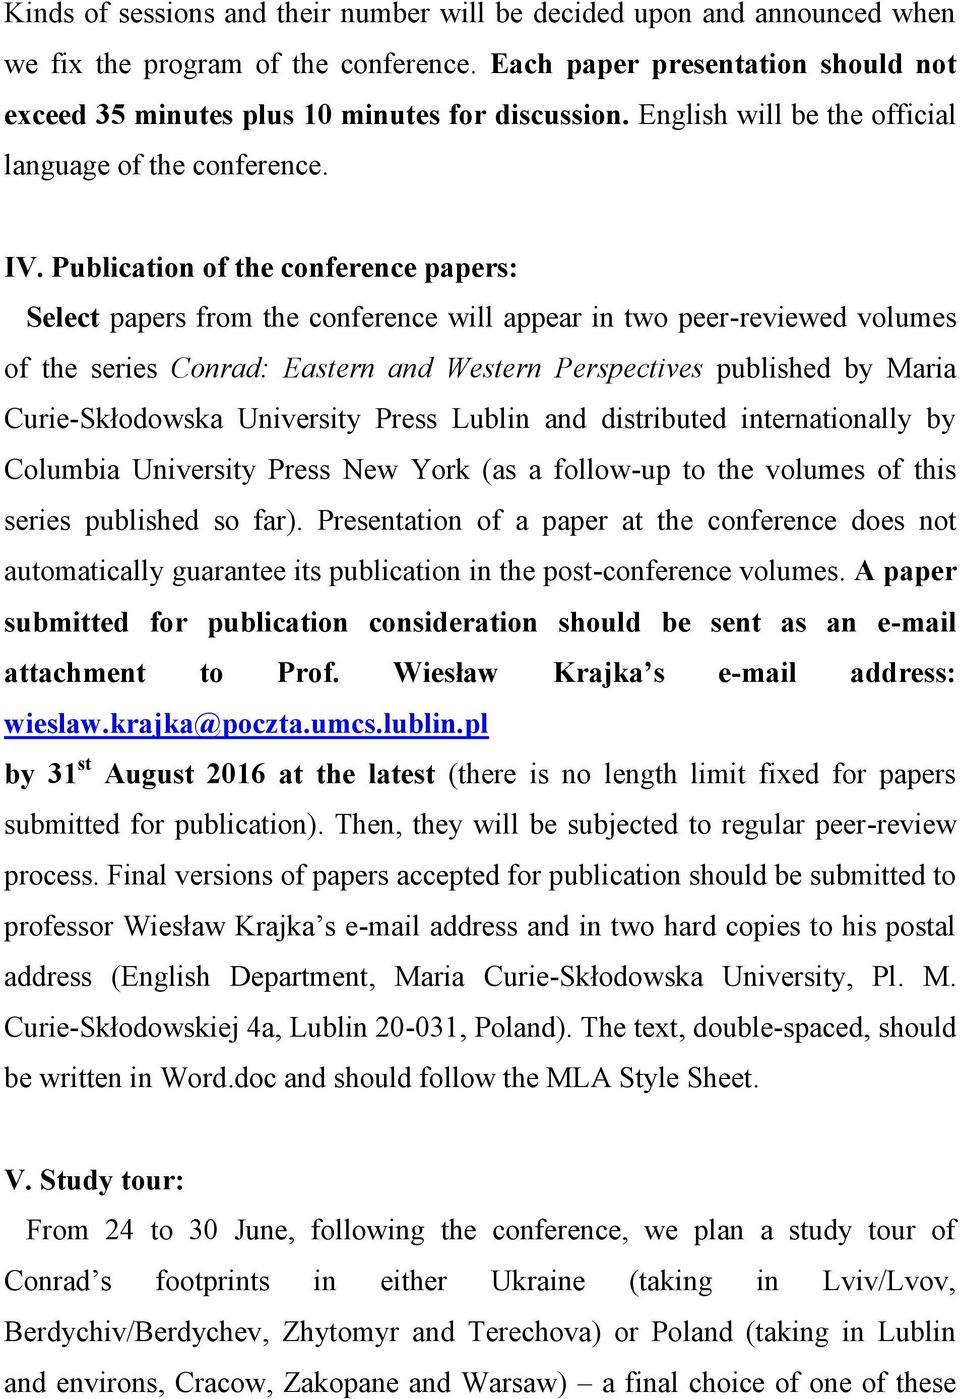 Publication of the conference papers: Select papers from the conference will appear in two peer-reviewed volumes of the series Conrad: Eastern and Western Perspectives published by Maria